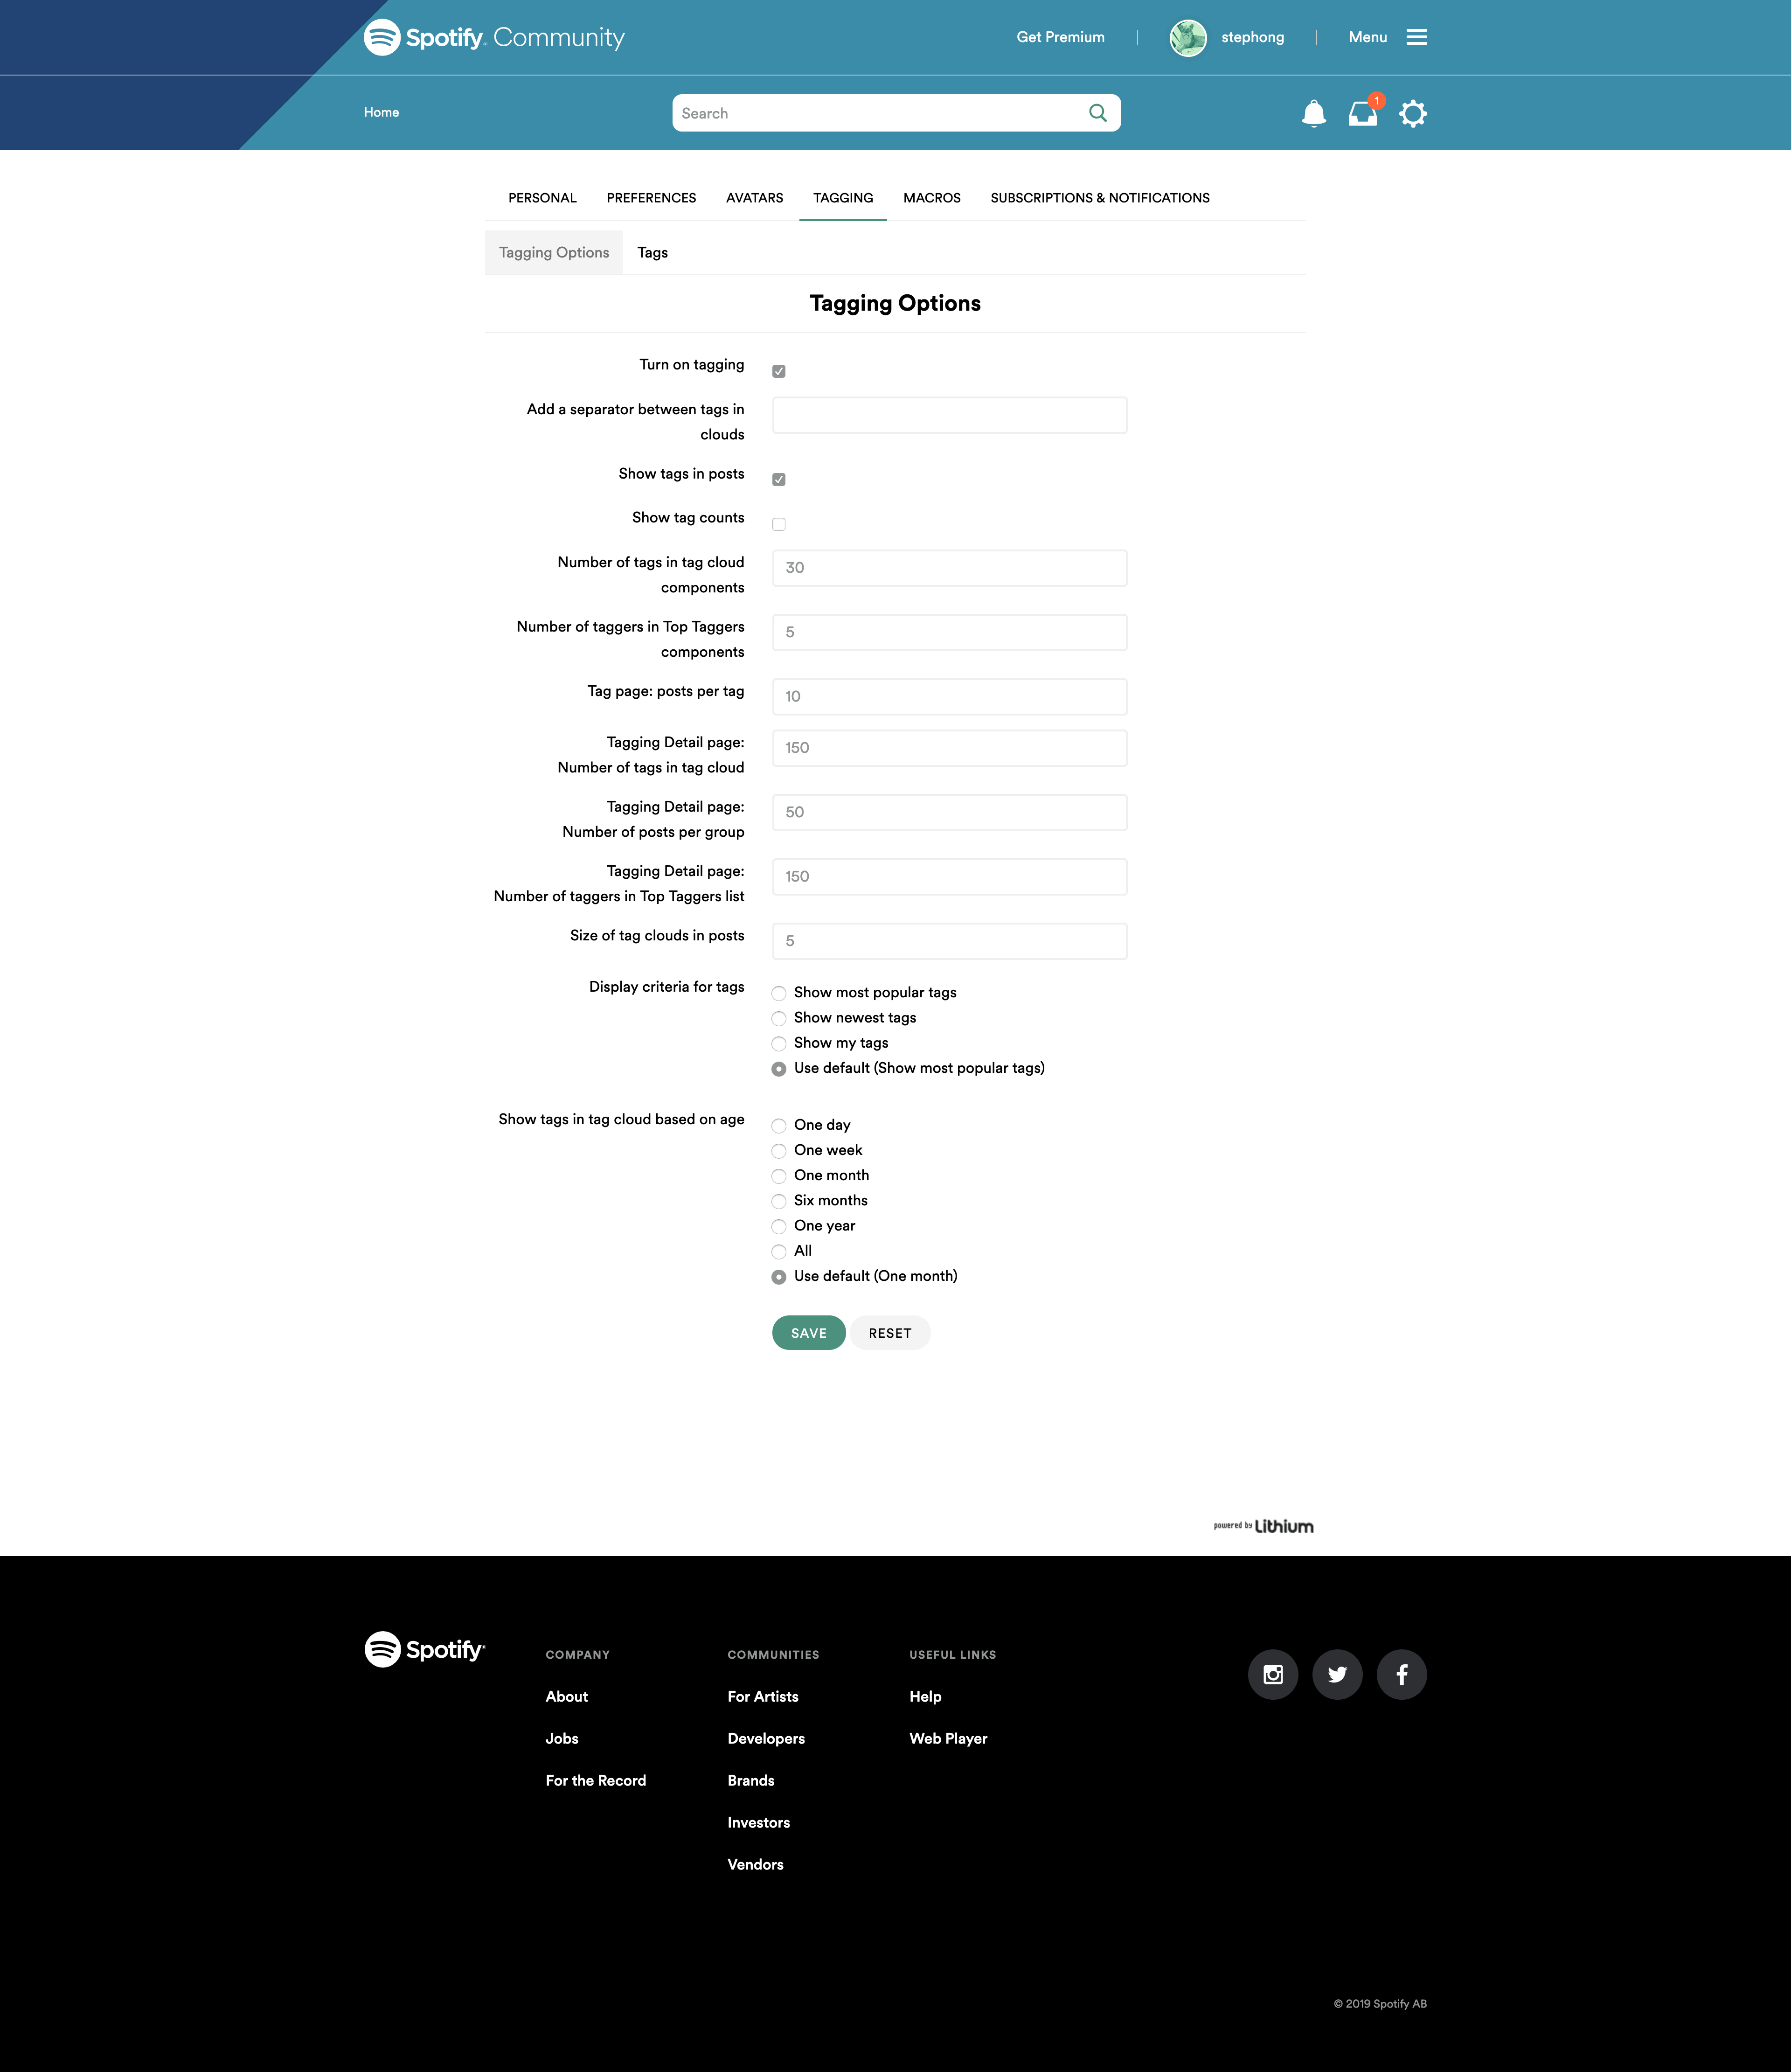 Tagging Options by Spotify Community